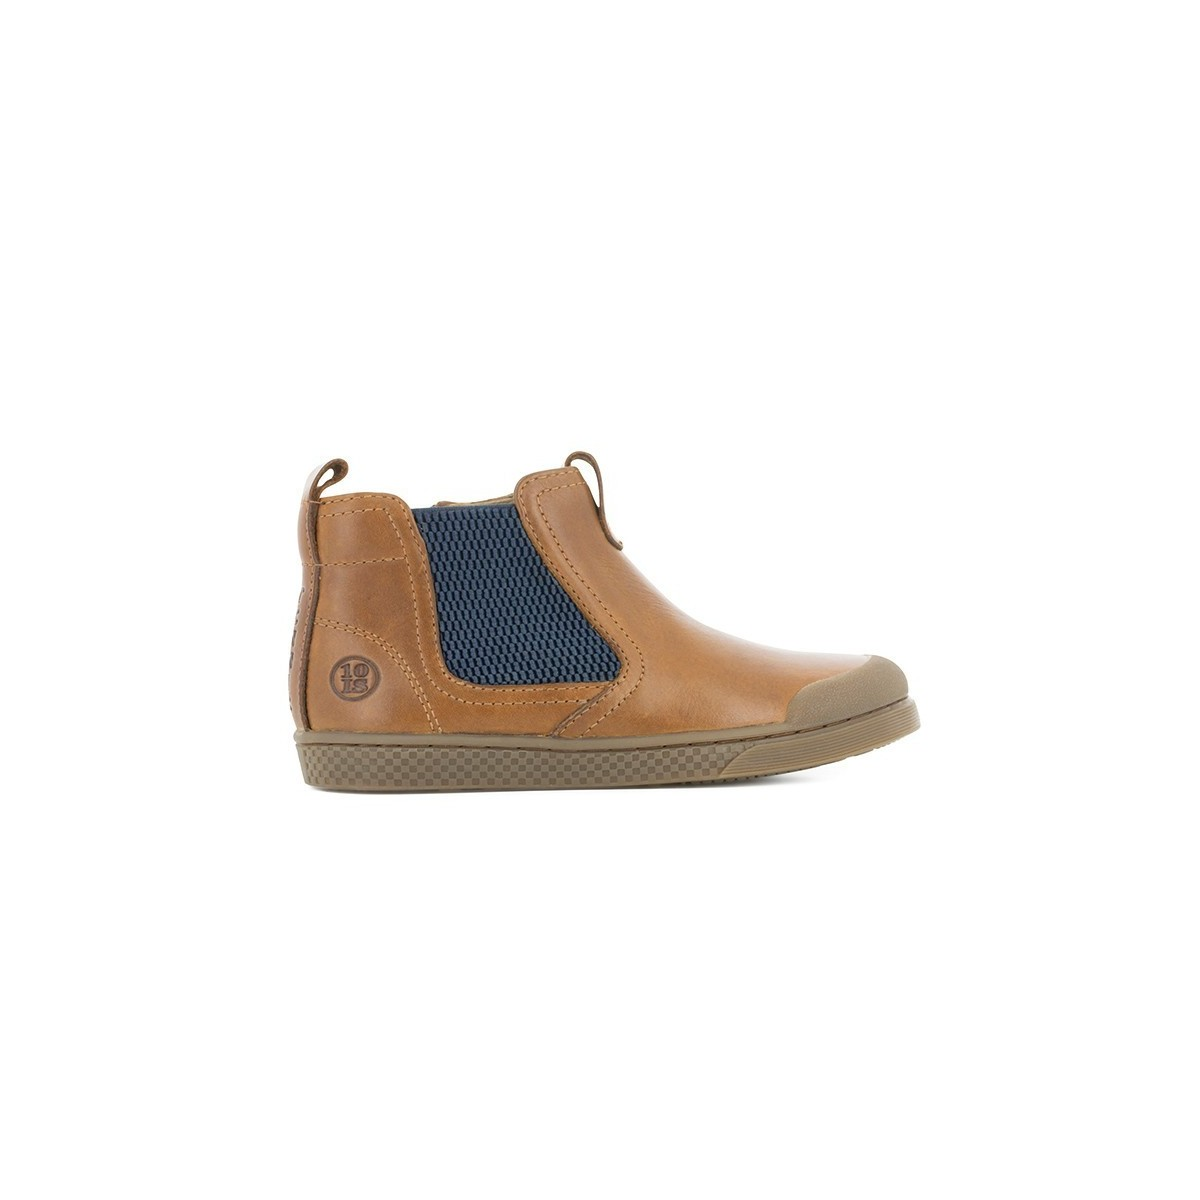 Boots Ten win brown/navy